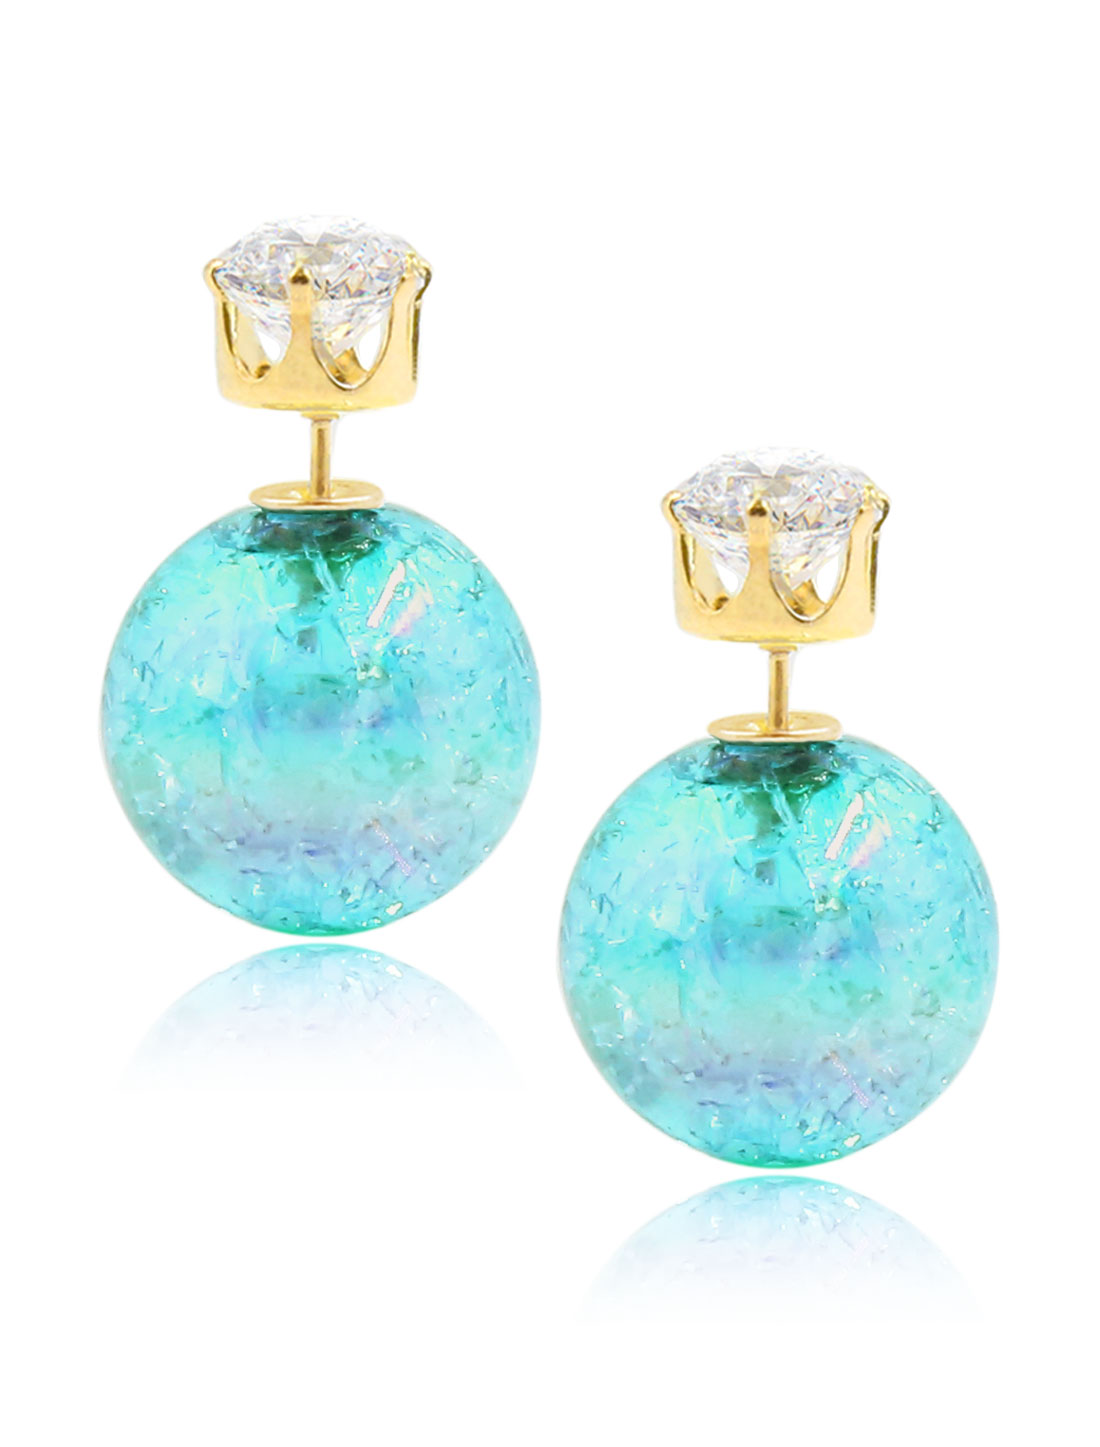 Fashion Women Elegant Double Sides Zircon Faux Crystal Ball Illusion-colour Earrings Ear Stud 1 Pair Sky Blue